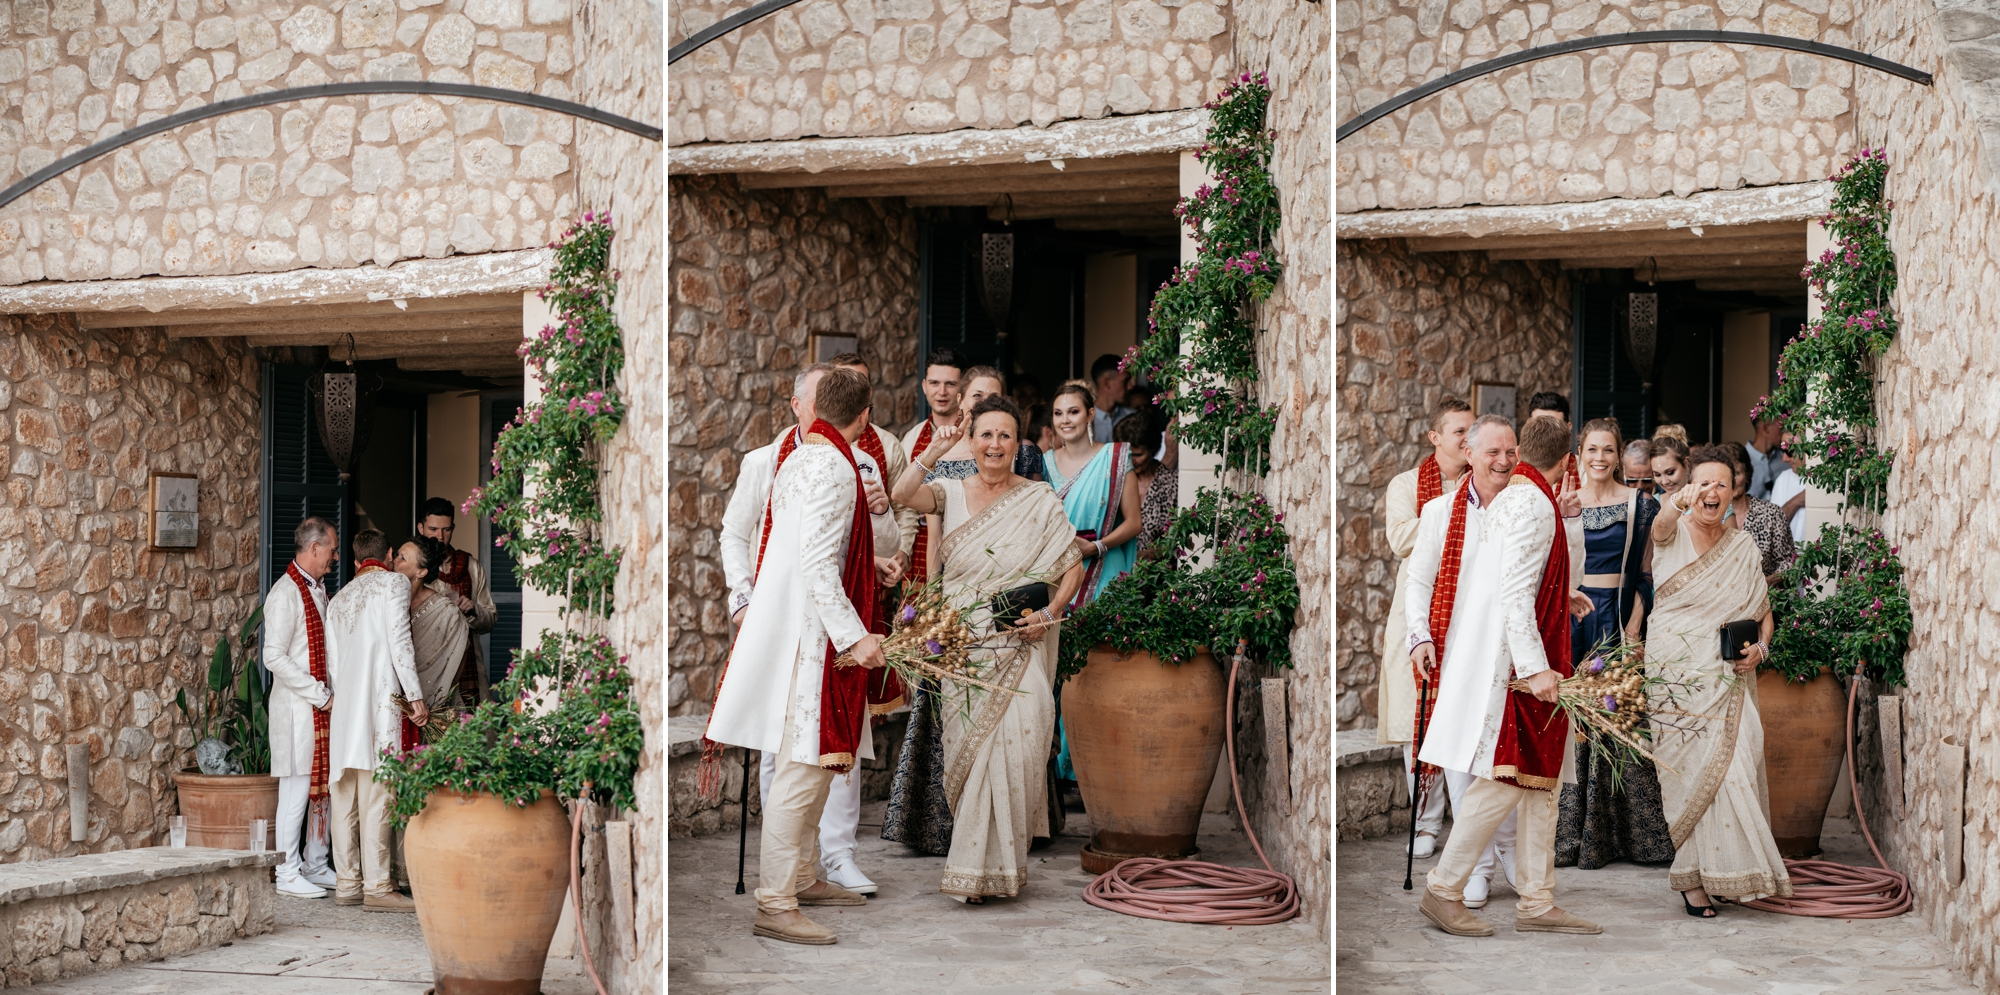 natural wedding photography mallorca boda hindu 0075 1